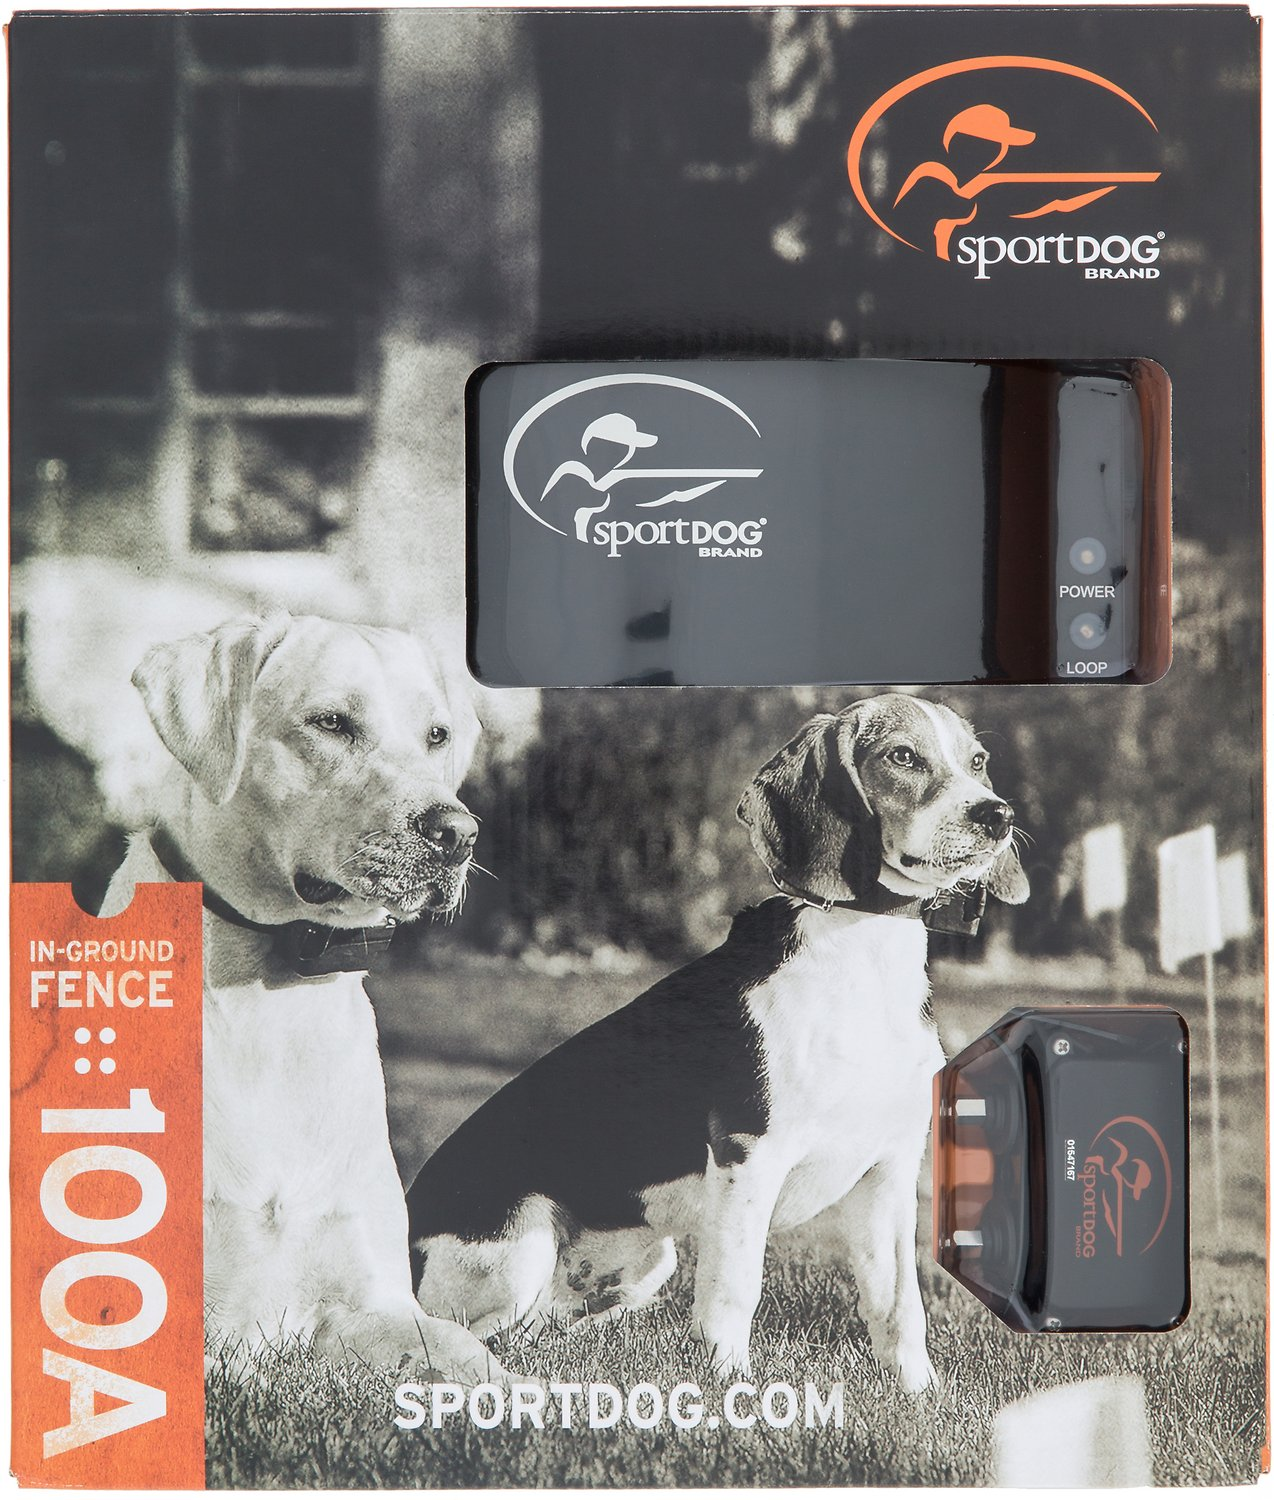 Sportdog Sdf 100a In Ground Fence System For Dogs Chewy Com